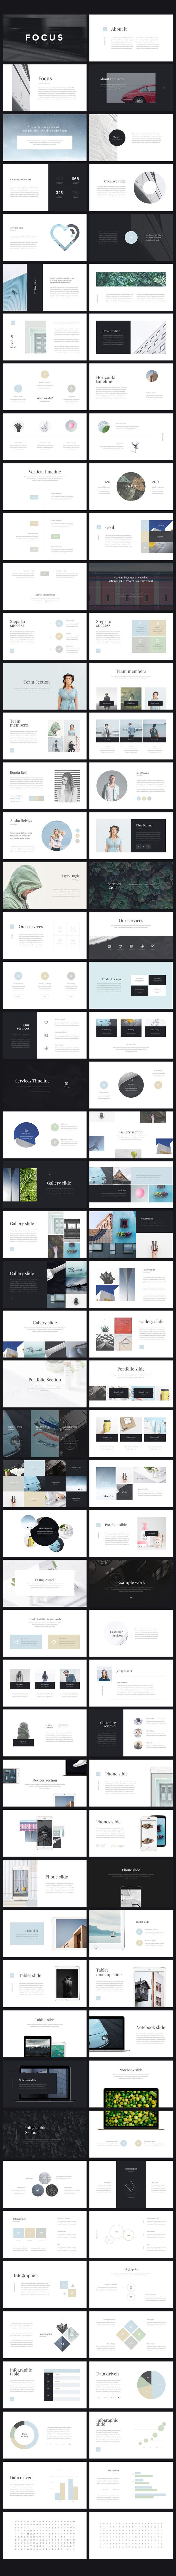 Focus PowerPoin Presentation + Bonus by Entersge on @creativemarket